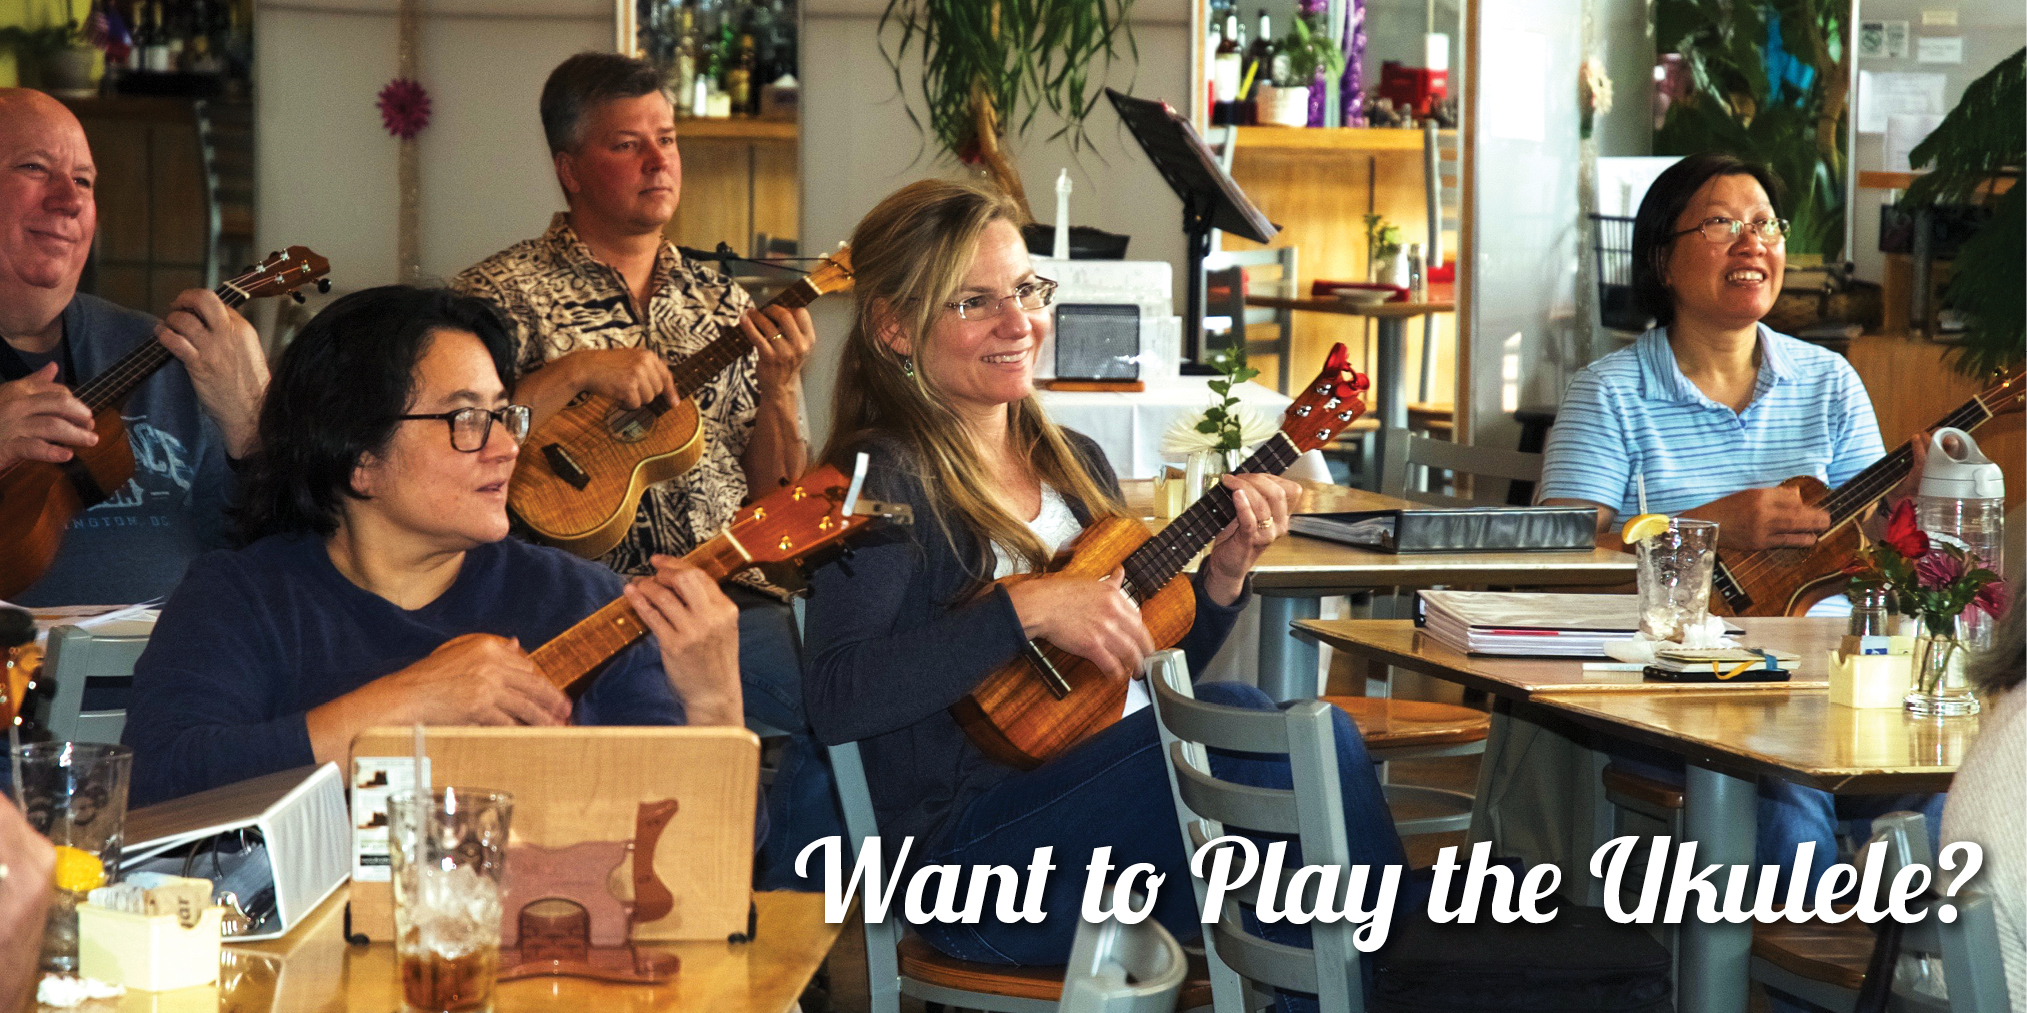 Want to Play the Ukulele? photo of people playing the ukulele